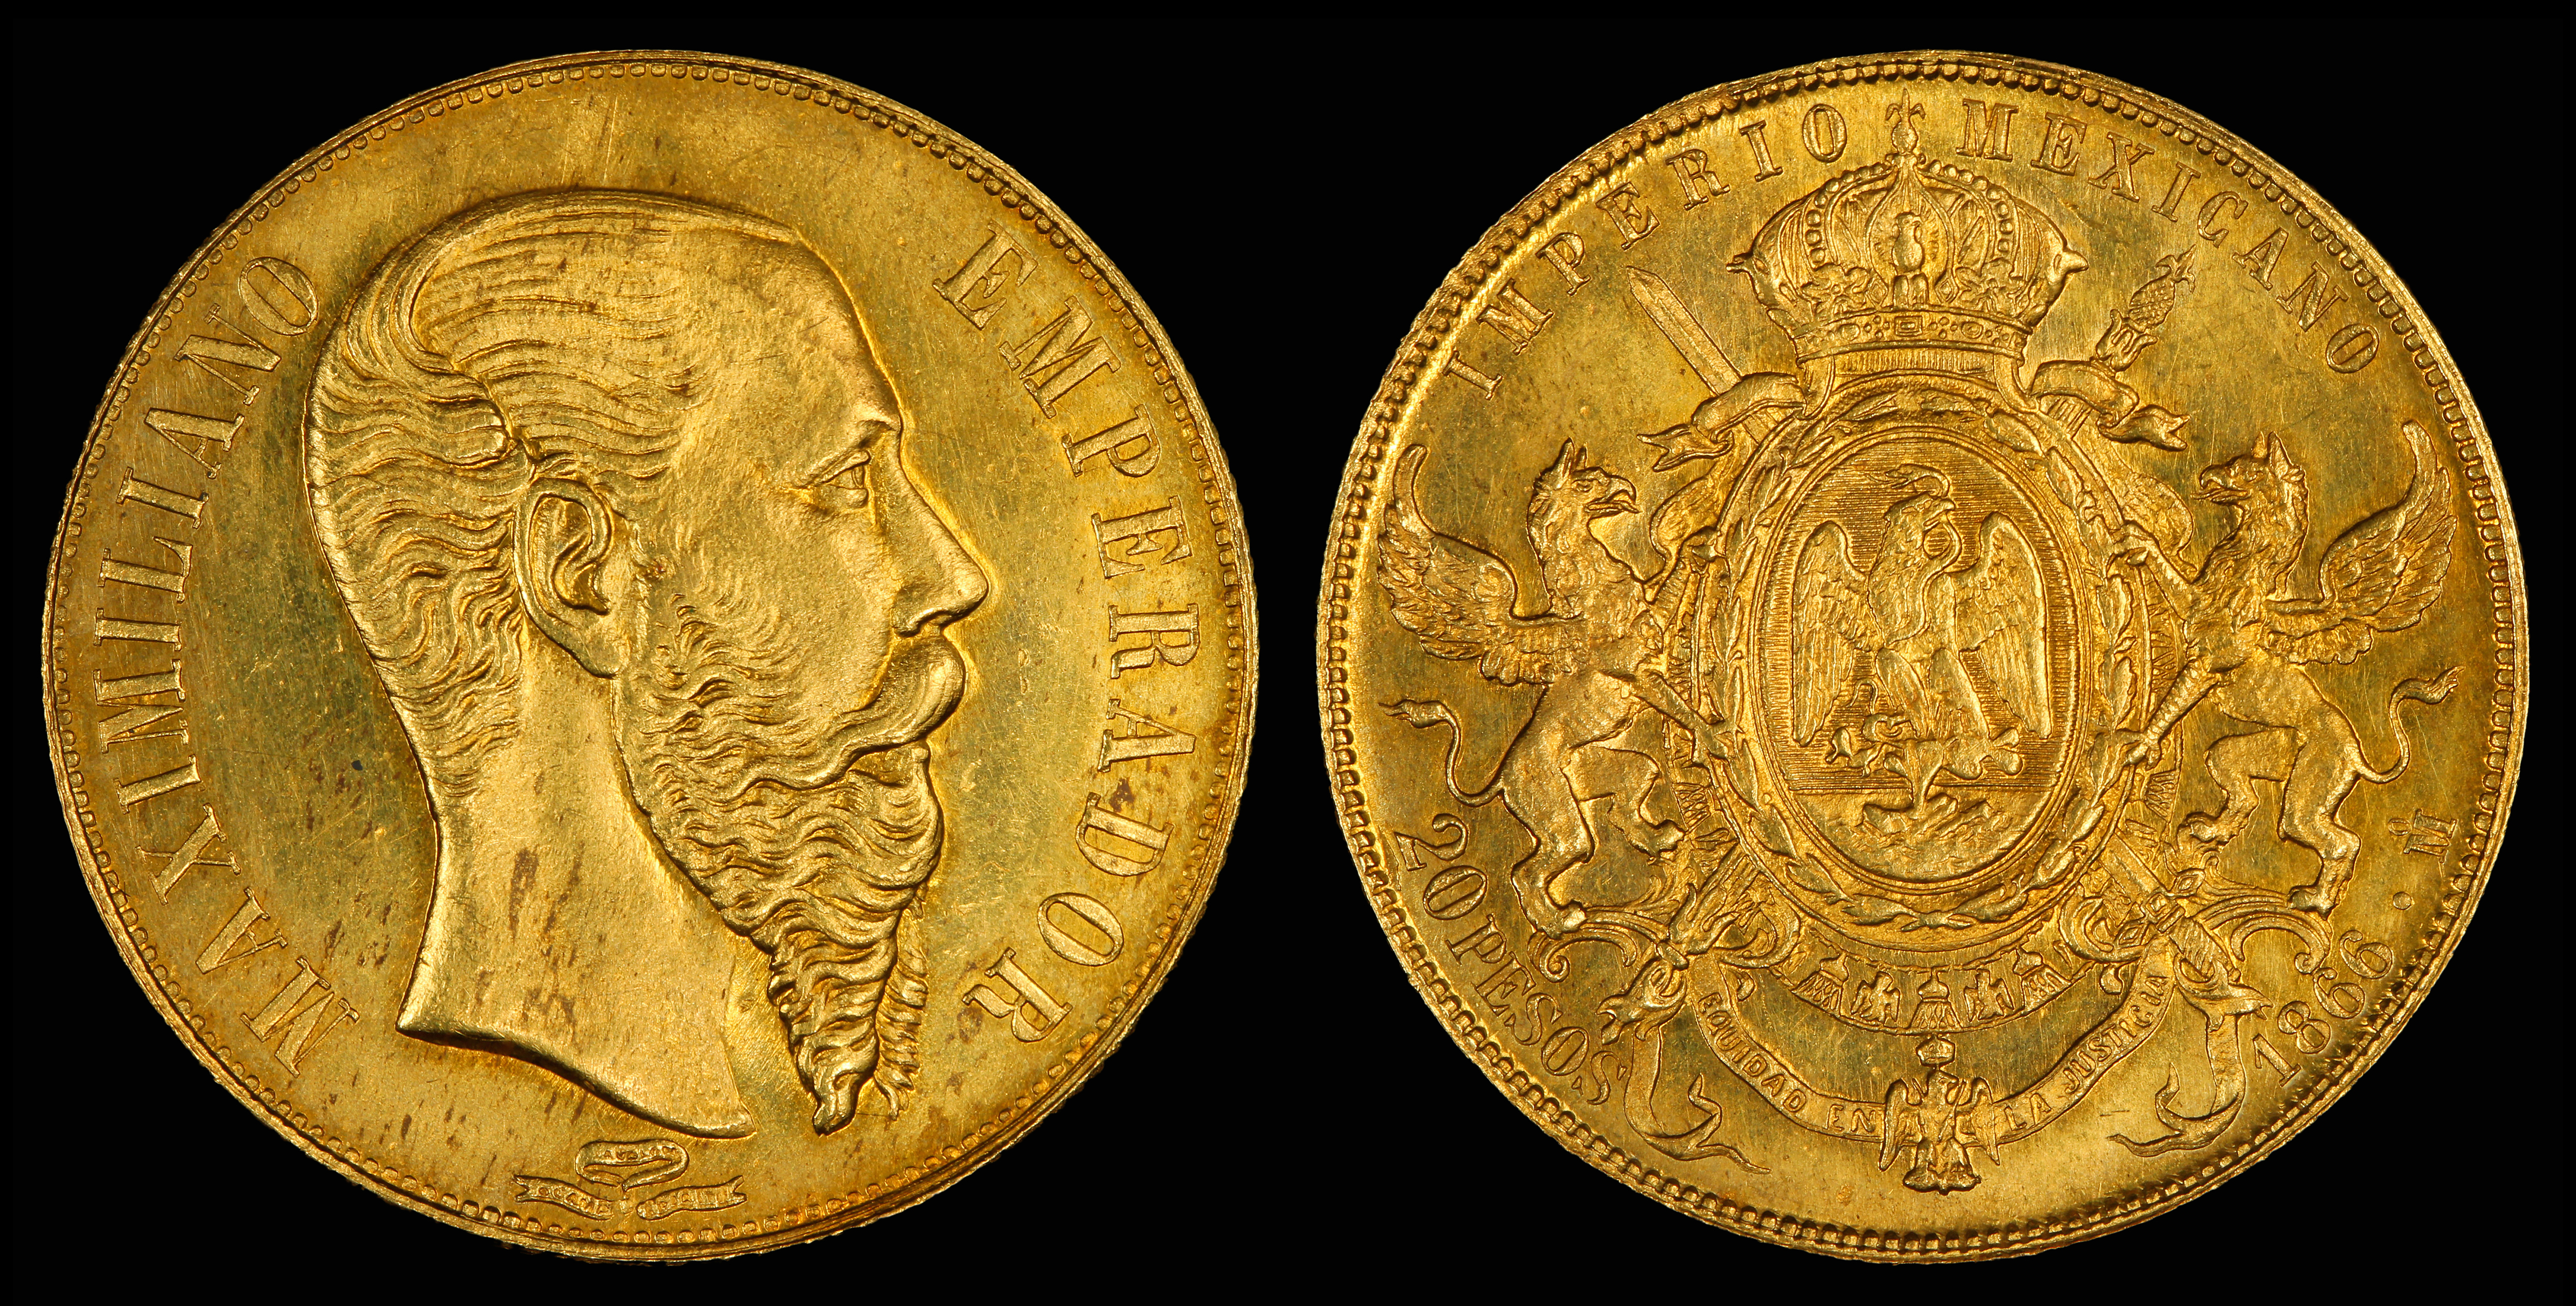 Mexican peso wikipedia maximilian i of mexico depicted on a 20 peso gold coin 1866 biocorpaavc Images